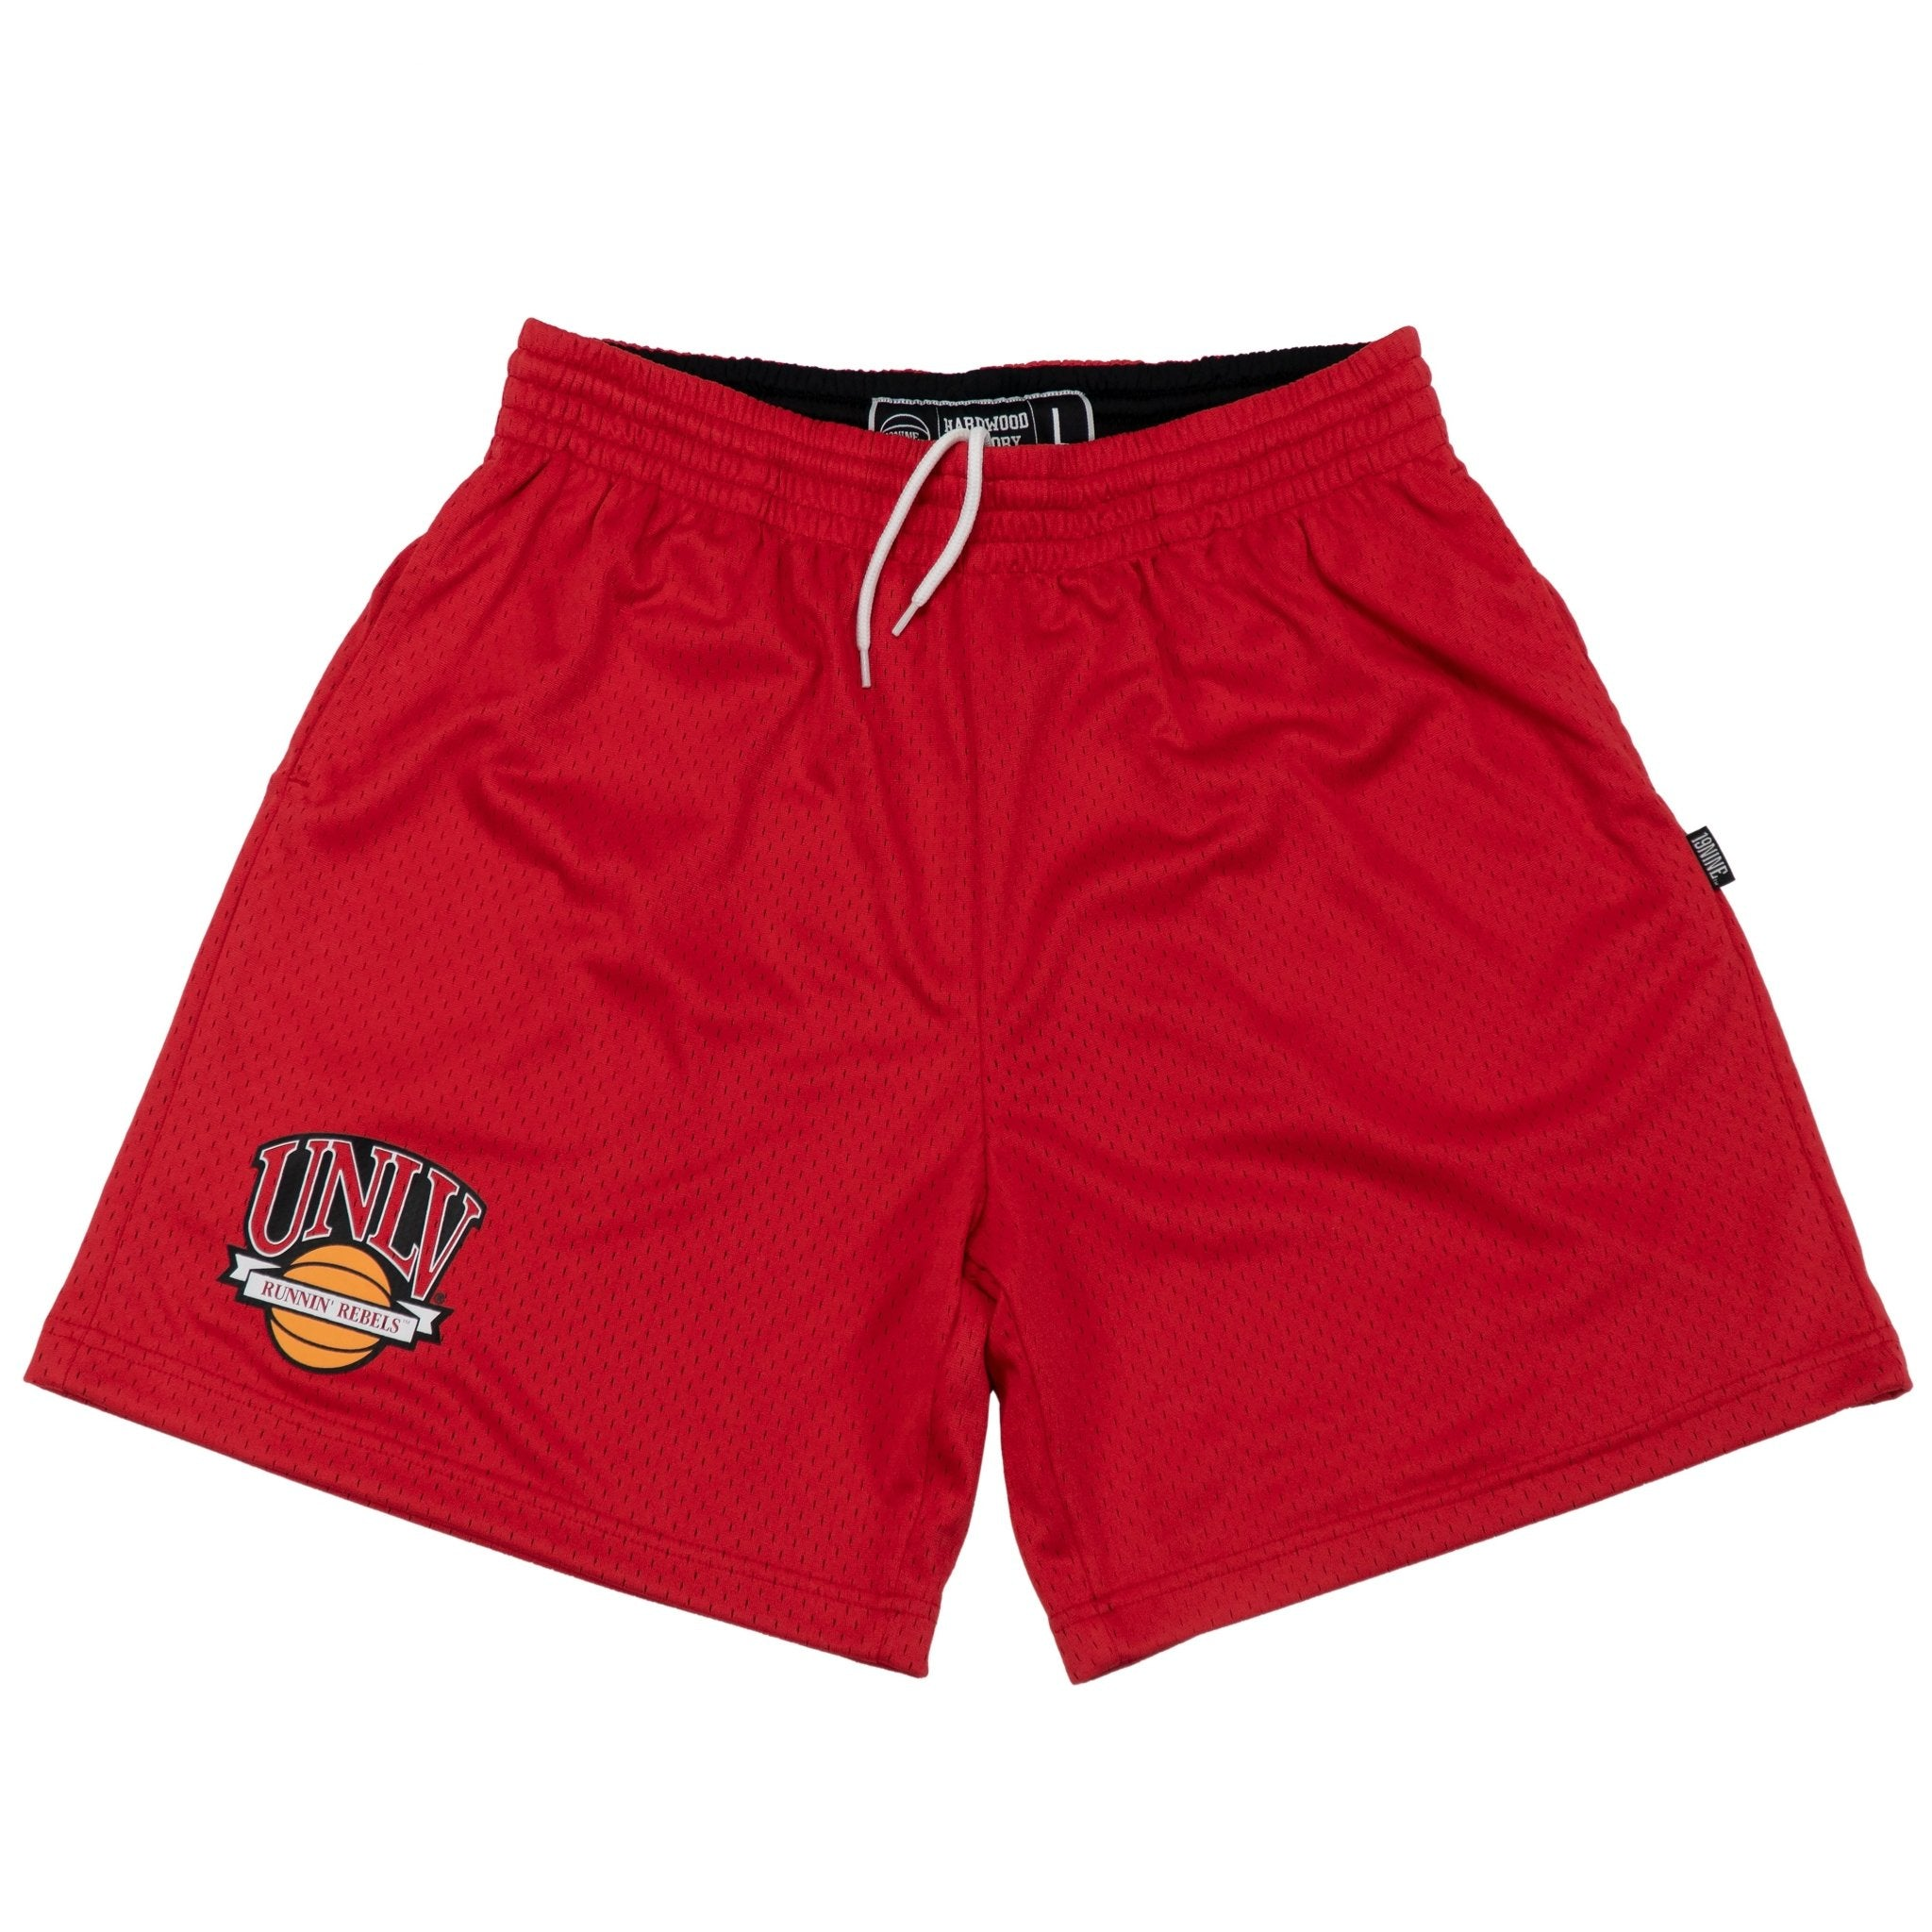 UNLV Retro Practice Shorts - SLAM